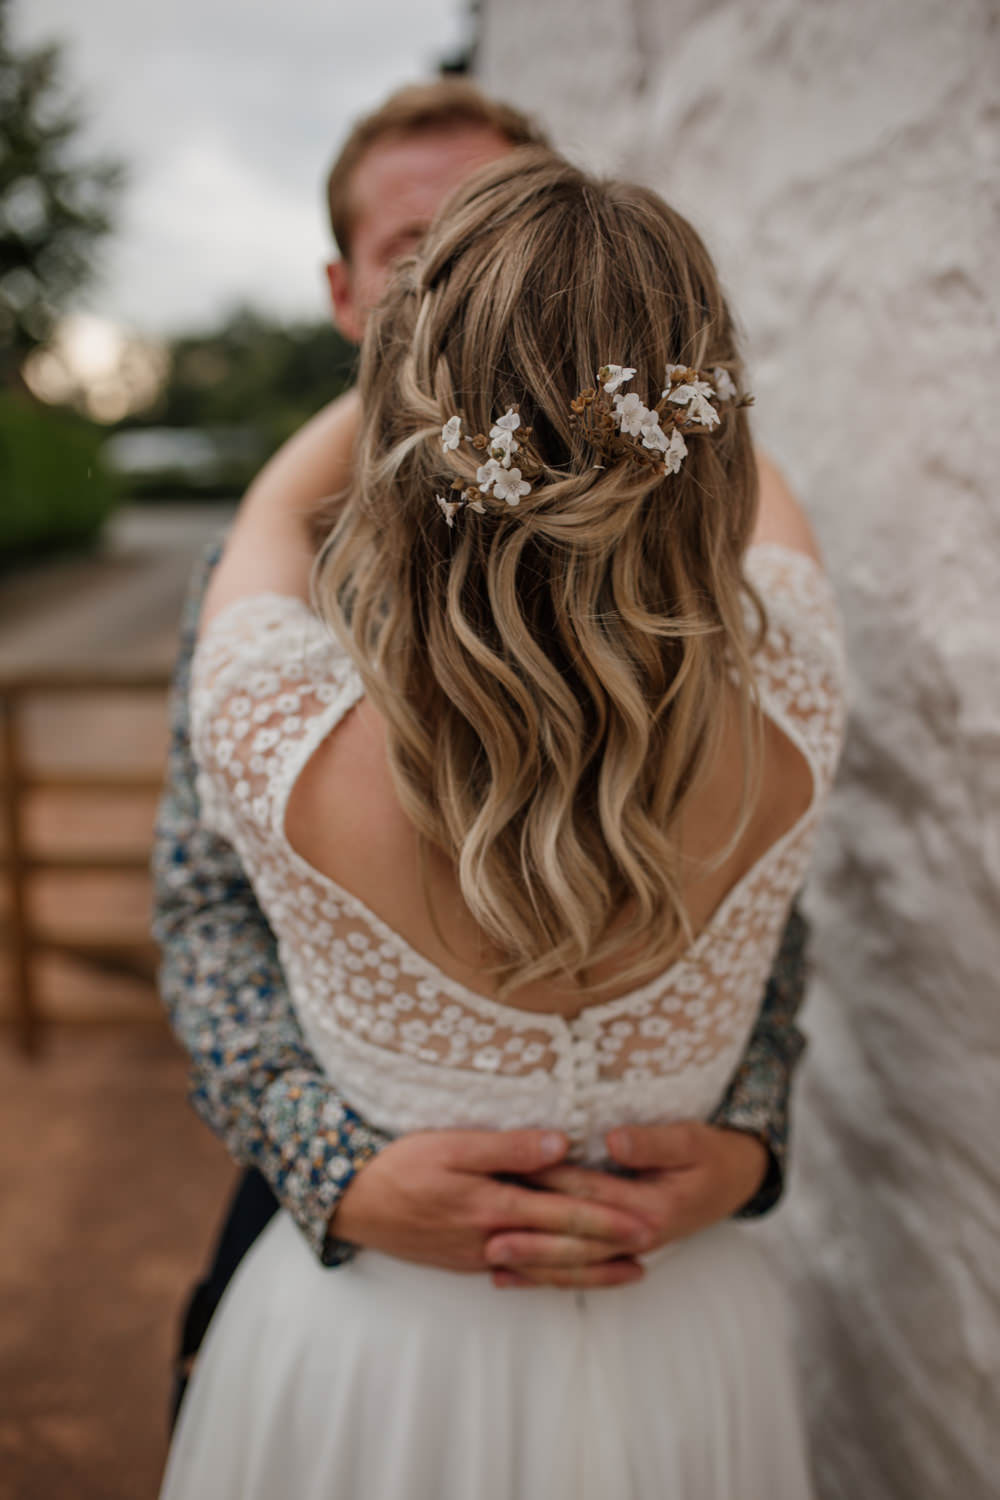 Hair Floral Flowers Half Up Plait Braid Barn Brynich Wedding Magda K Photography